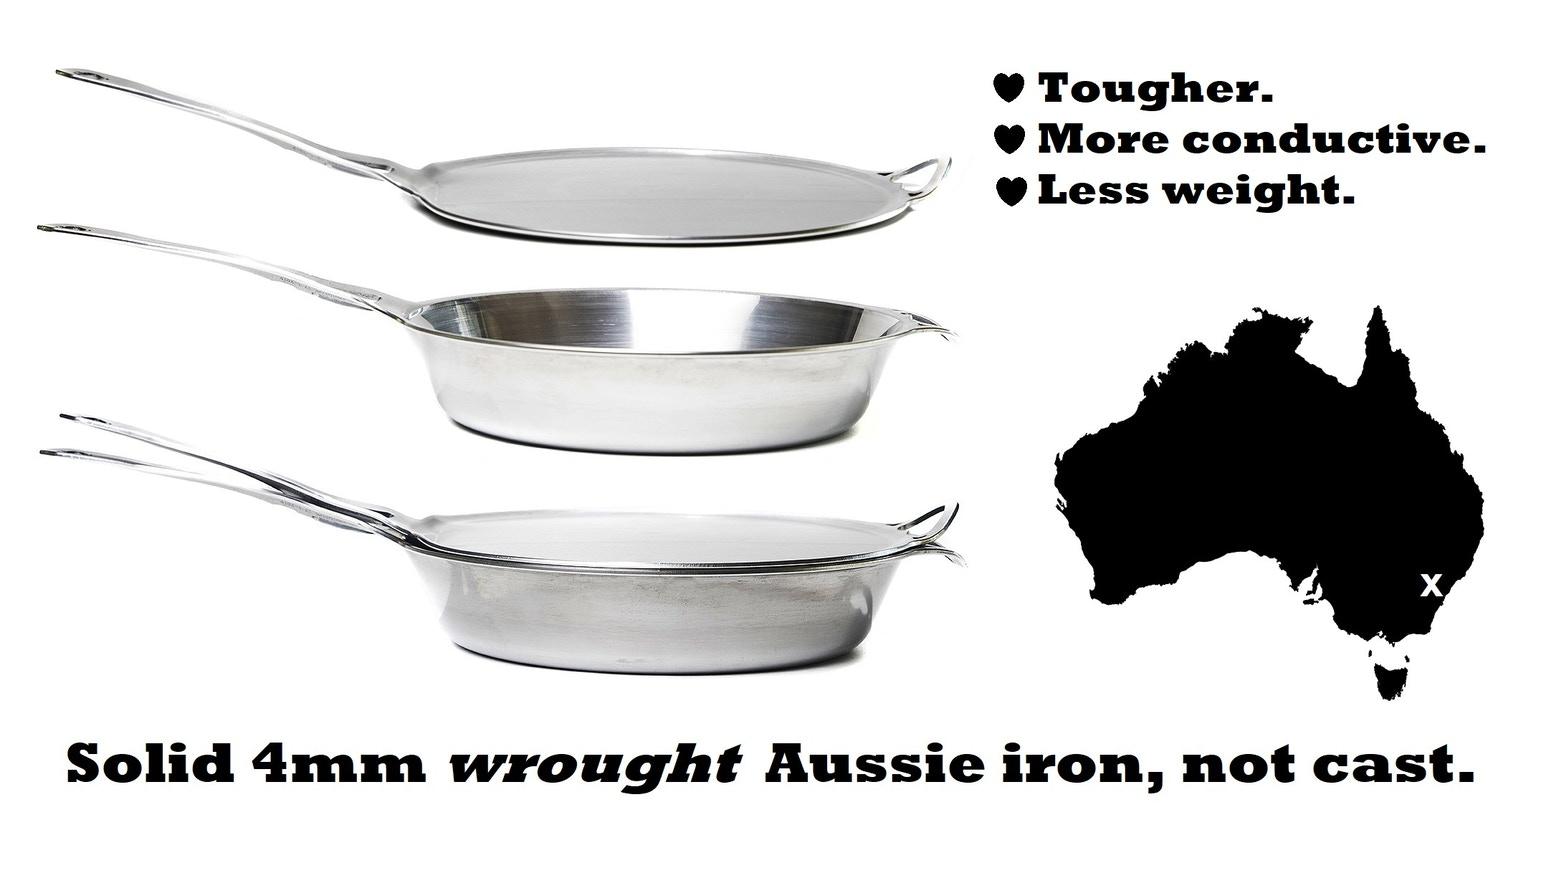 Indestructible extra HD: No warping, fast & even heating, for powerful induction, fire, restaurant...for GENERATIONS. 100% made in Oz!